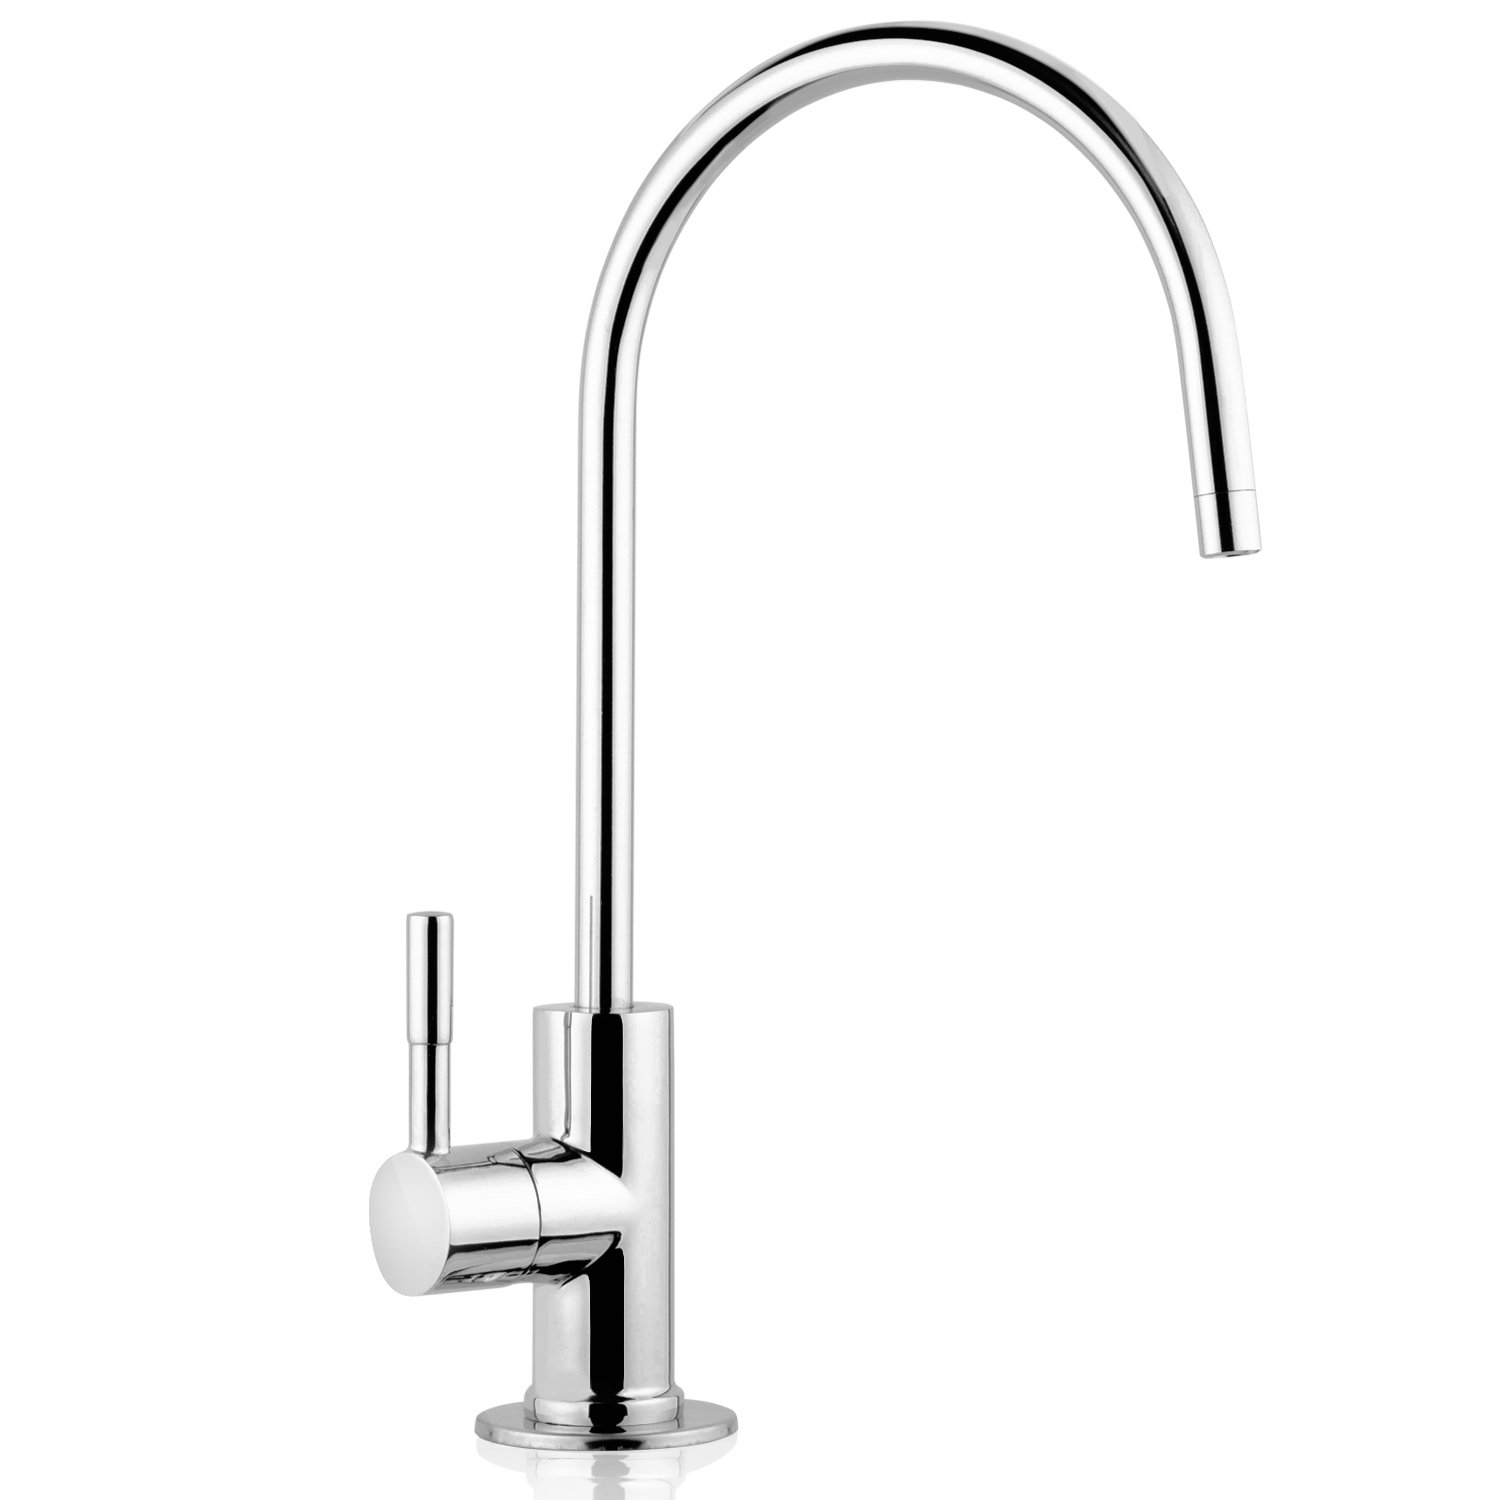 threads with dp way amazon male fit water com spout diverter faucets improvement ro for home